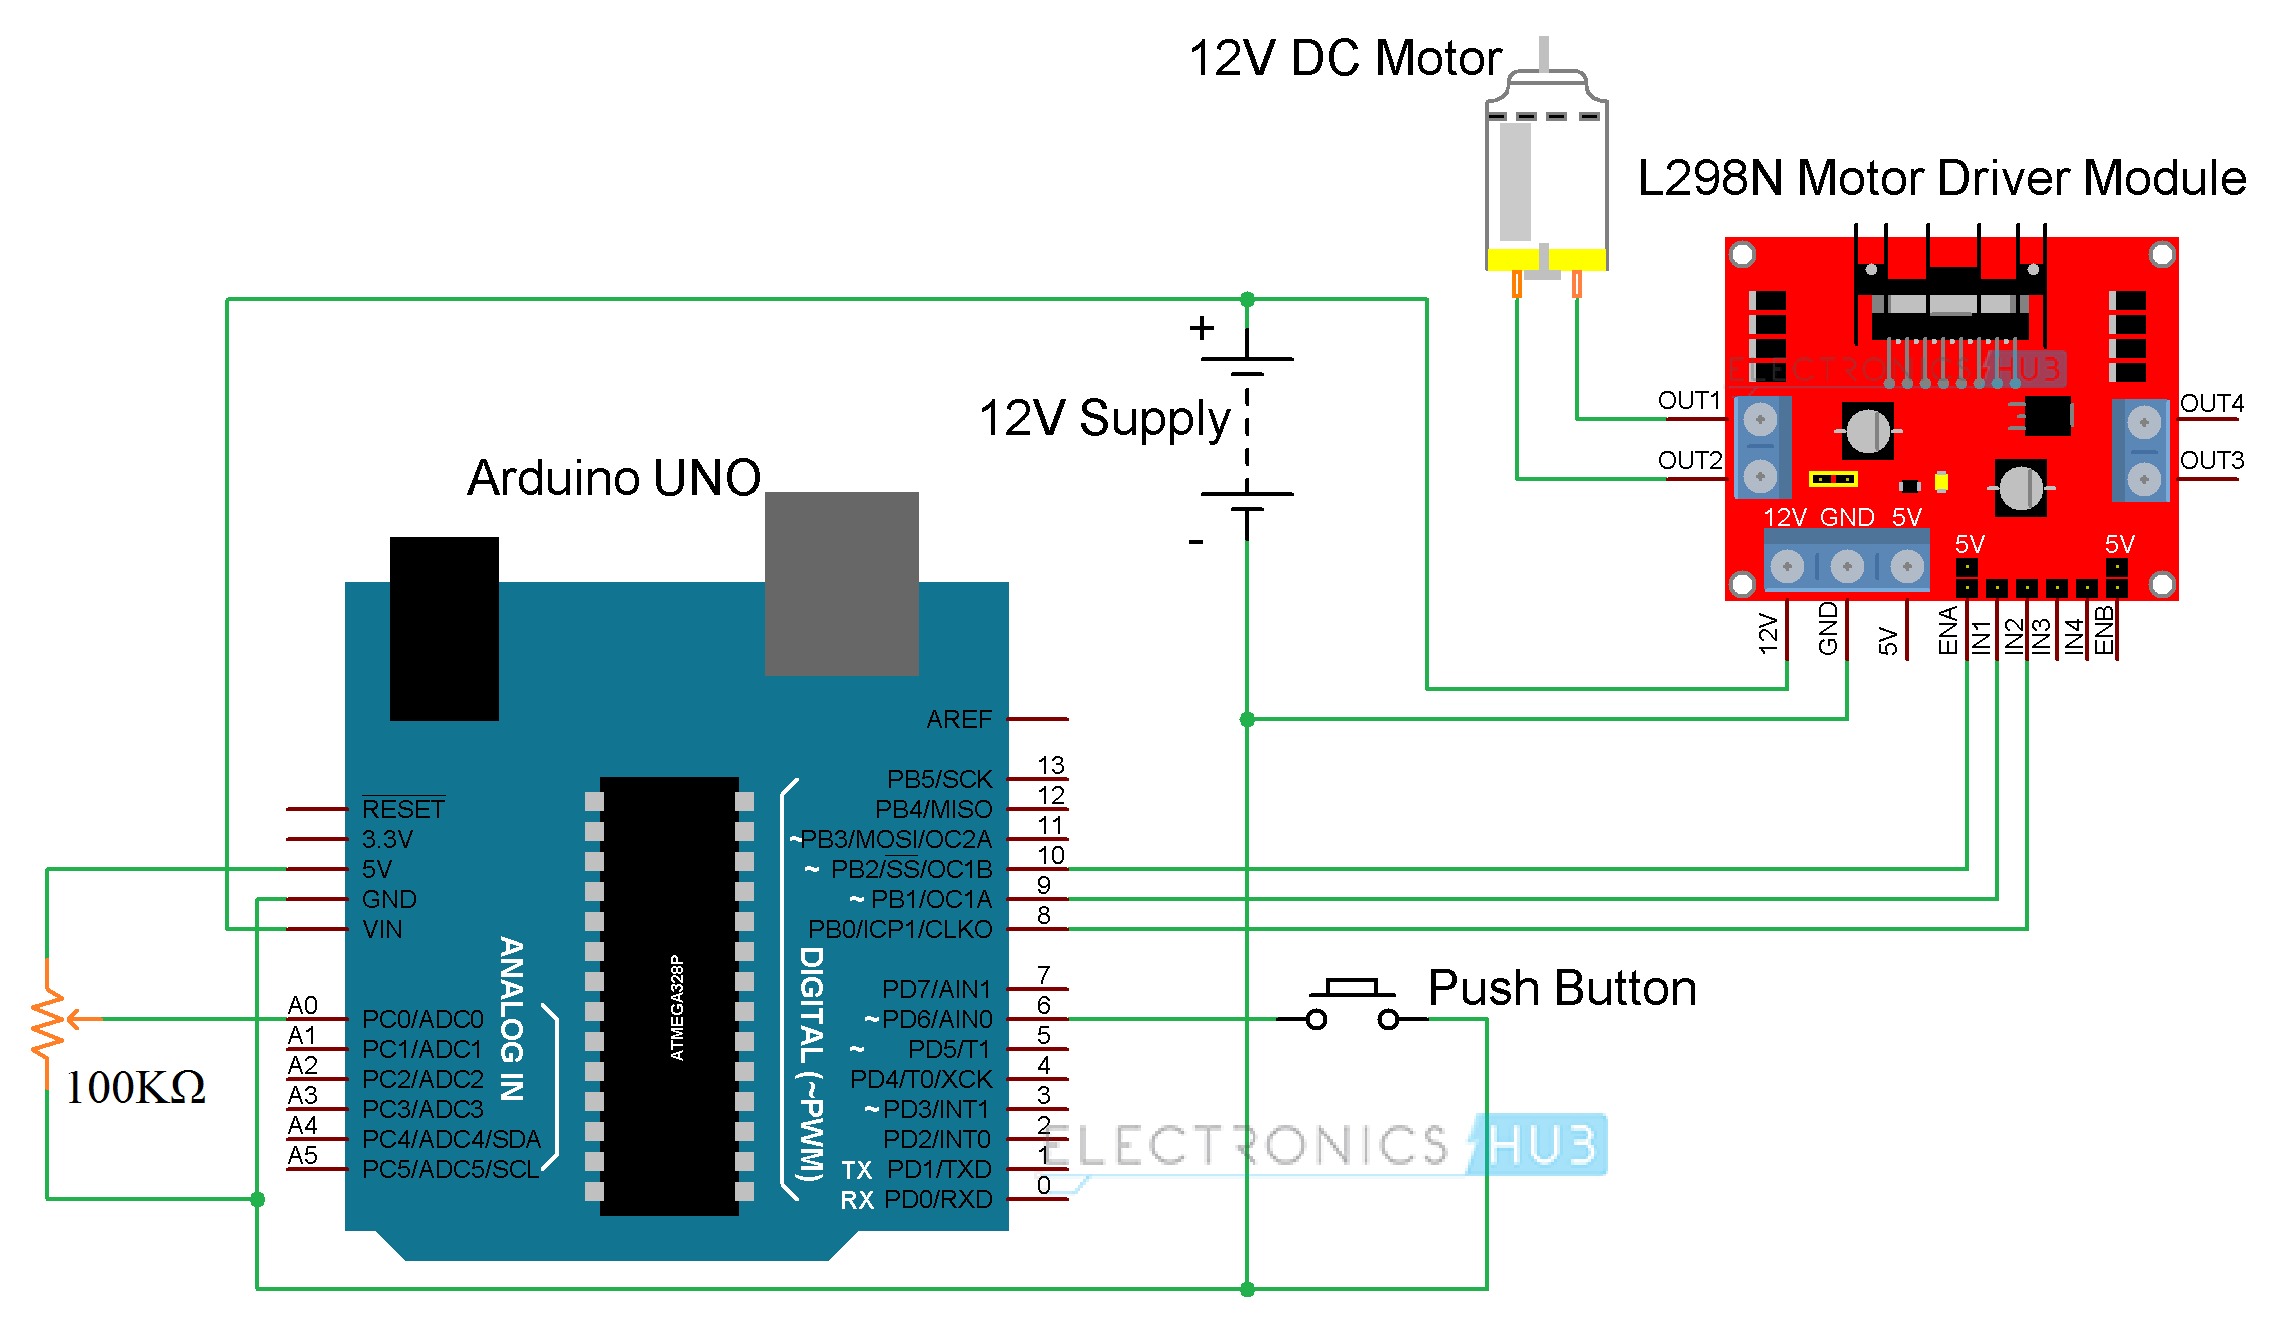 Arduino DC Motor Control using L298N Motor Driver - PWM | H-Bridge on vga pinout diagram, 4 pin cable, 4 pin harness diagram, 4 pin fuse, 110cc wire harness diagram, 4 pin wire harness, 4 pin connector, 4 pin switch, s-video pin diagram, 4 pin sensor diagram, 4 pin fan diagram, 4 pin relay, 4 pin wiring chart, 4 pin round trailer wiring, 4 pin plug, and 4 pin input diagram, 4 pin trailer diagram, 4 pin trailer harness, 4 pin voltage, 4 pin socket diagram,